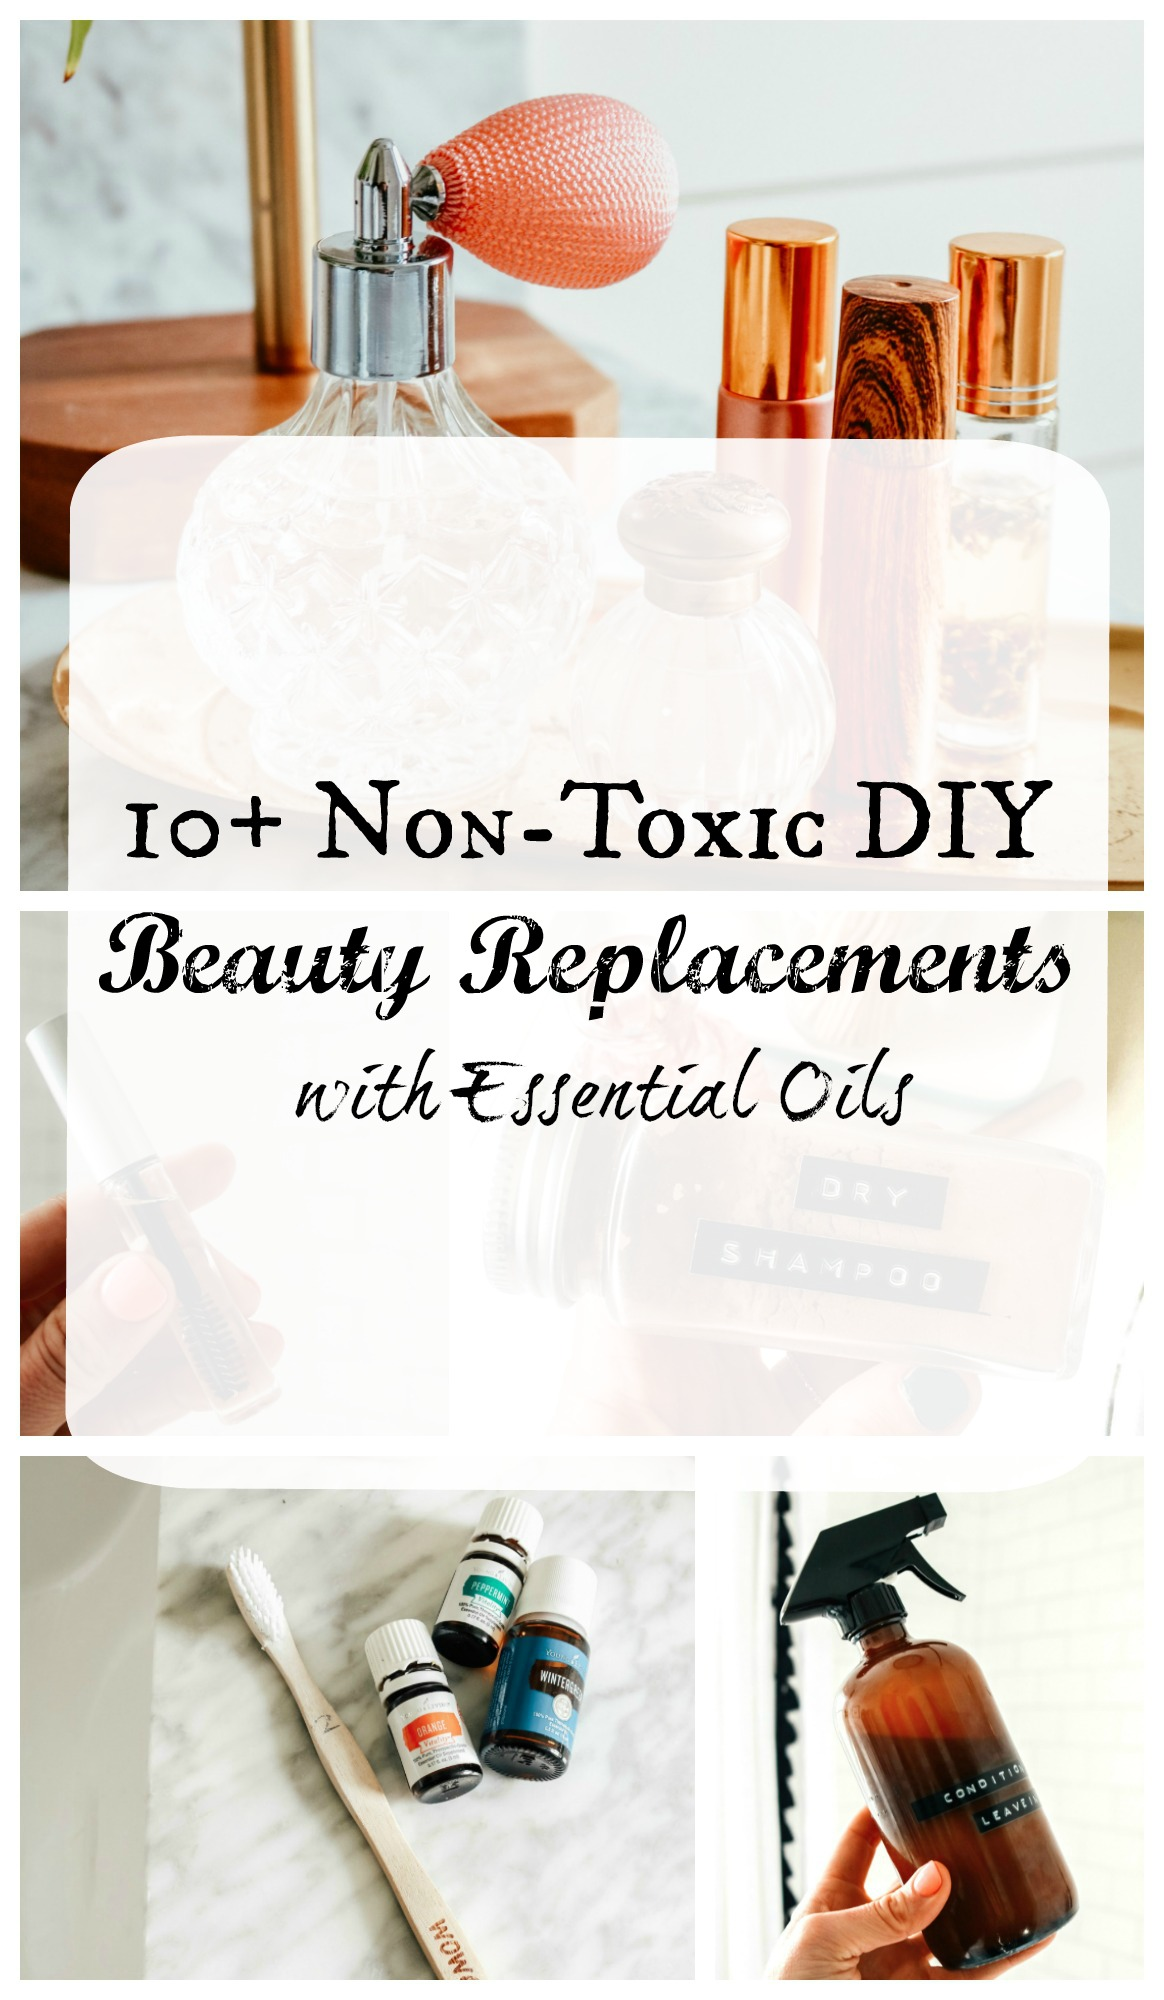 10+ Non-Toxic DIY Beauty Replacements!!!